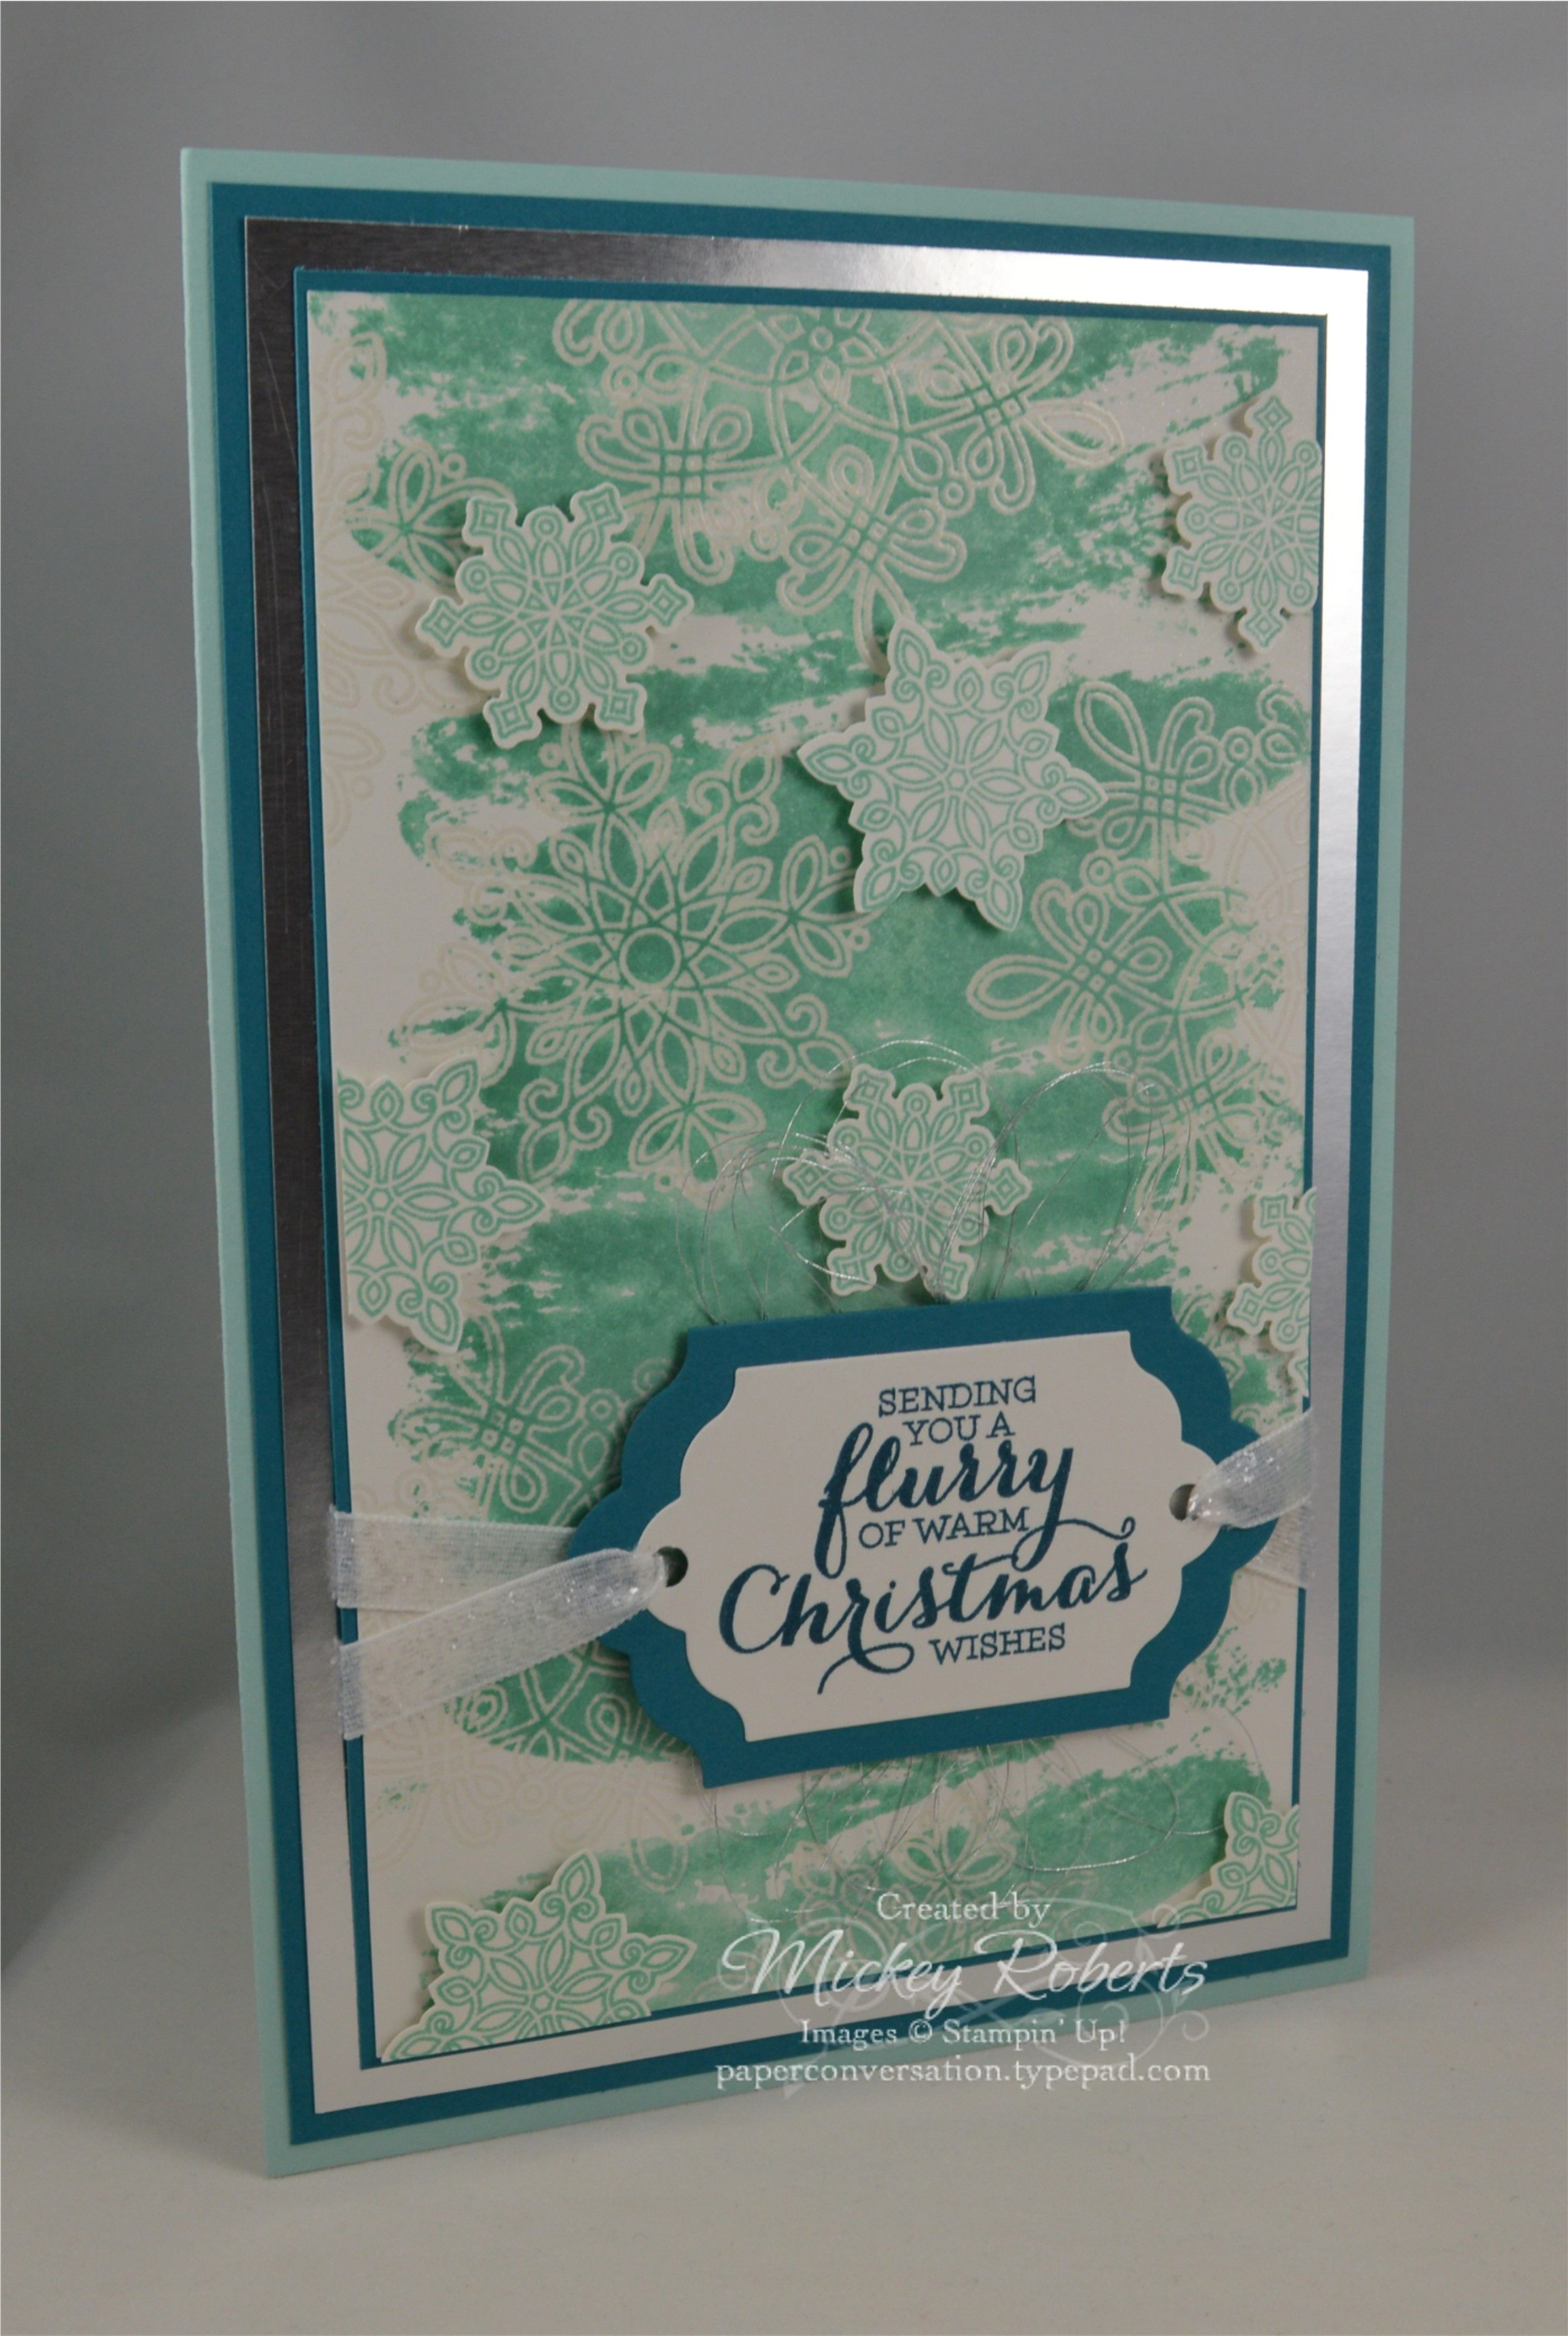 """Blog Post Date:  Dec 7, 2015.  An oversized card (card front is 8-1/2"""" x 5-1/2"""") featuring the Flurry of Wishes and Watercolor Wash stamp sets.  Other items used for this Christmas card include:  Clear Stampin' Emboss powder, Versamark ink, Pool Party and Island Indigo inks and cardstocks, Silver Foil Sheets, Shimmery White cardstock, Silver Metallic Thread, White 3/8"""" Glitter ribbon, Snow Flurry Punch, and the Lots of Labels Framelits with the Big Shot."""